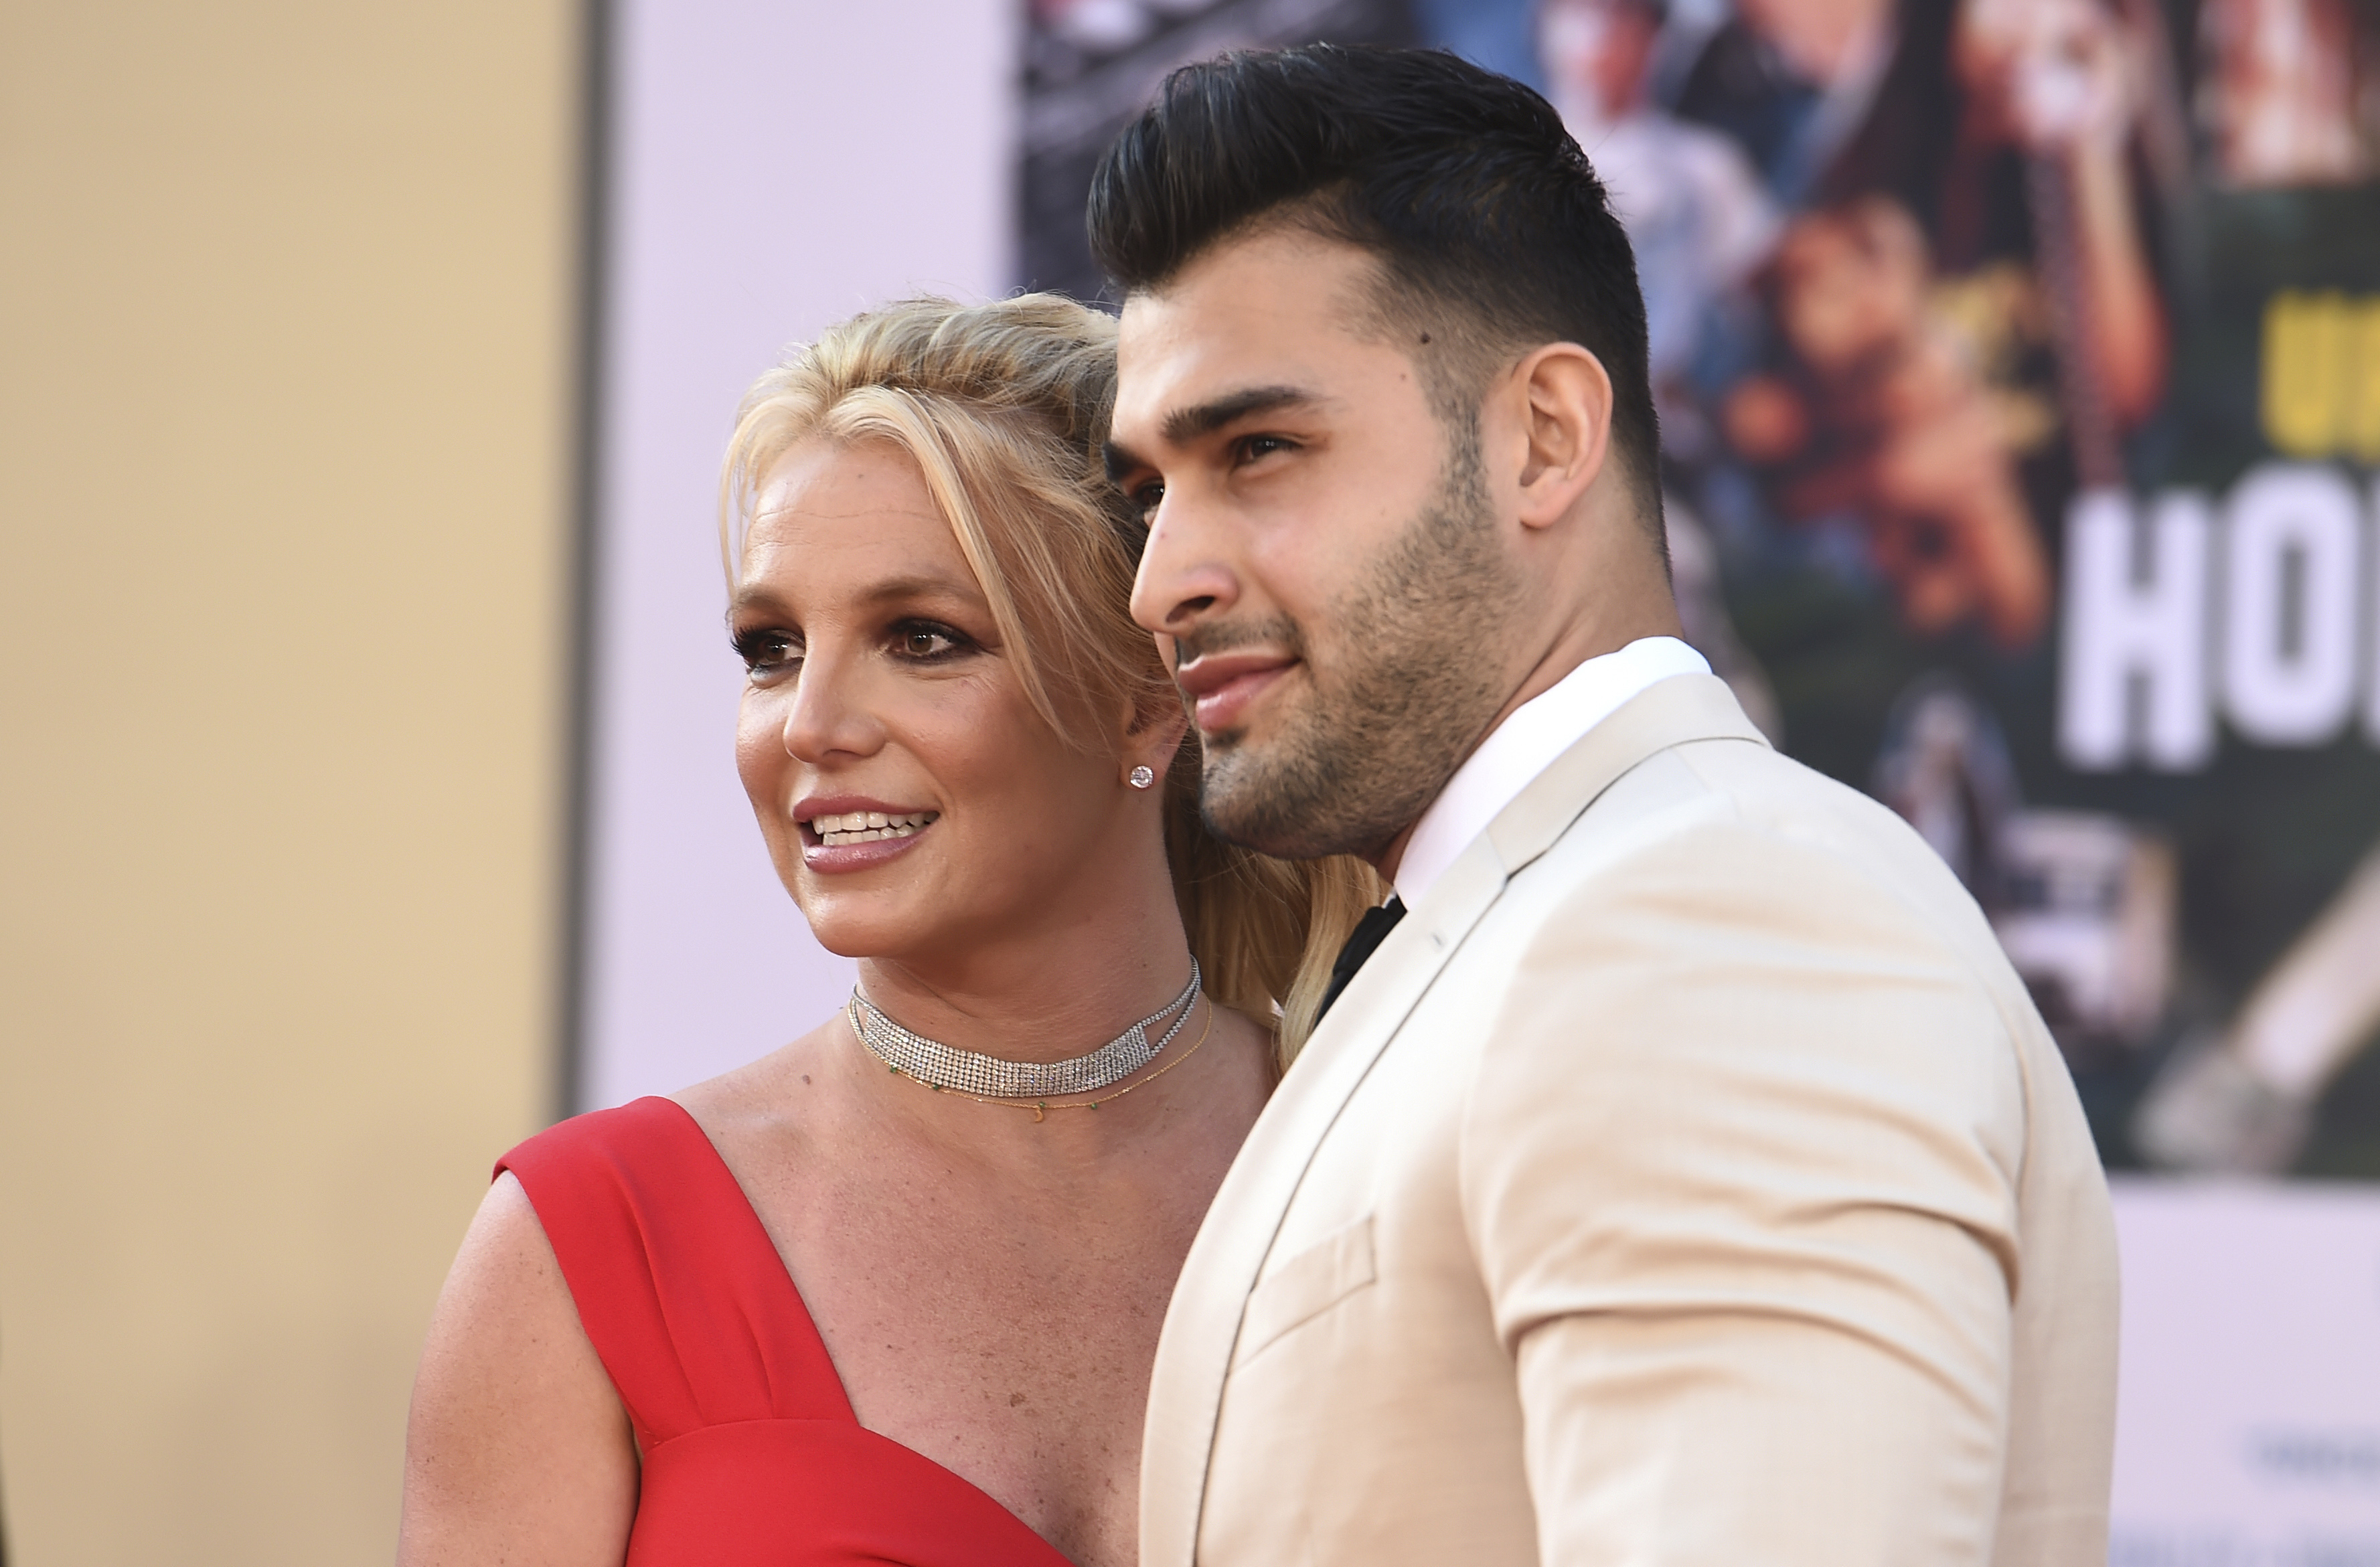 """Britney Spears and Sam Asghari arrive at the Los Angeles premiere of Once Upon a Time in Hollywood, at the TCL Chinese Theatre, Monday, July 22, 2019. Spears announced on Instagram on Sunday, Sept. 12, 2021, that she and Asghari are engaged. The couple met on the set of her """"Slumber Party"""" music video in 2016."""